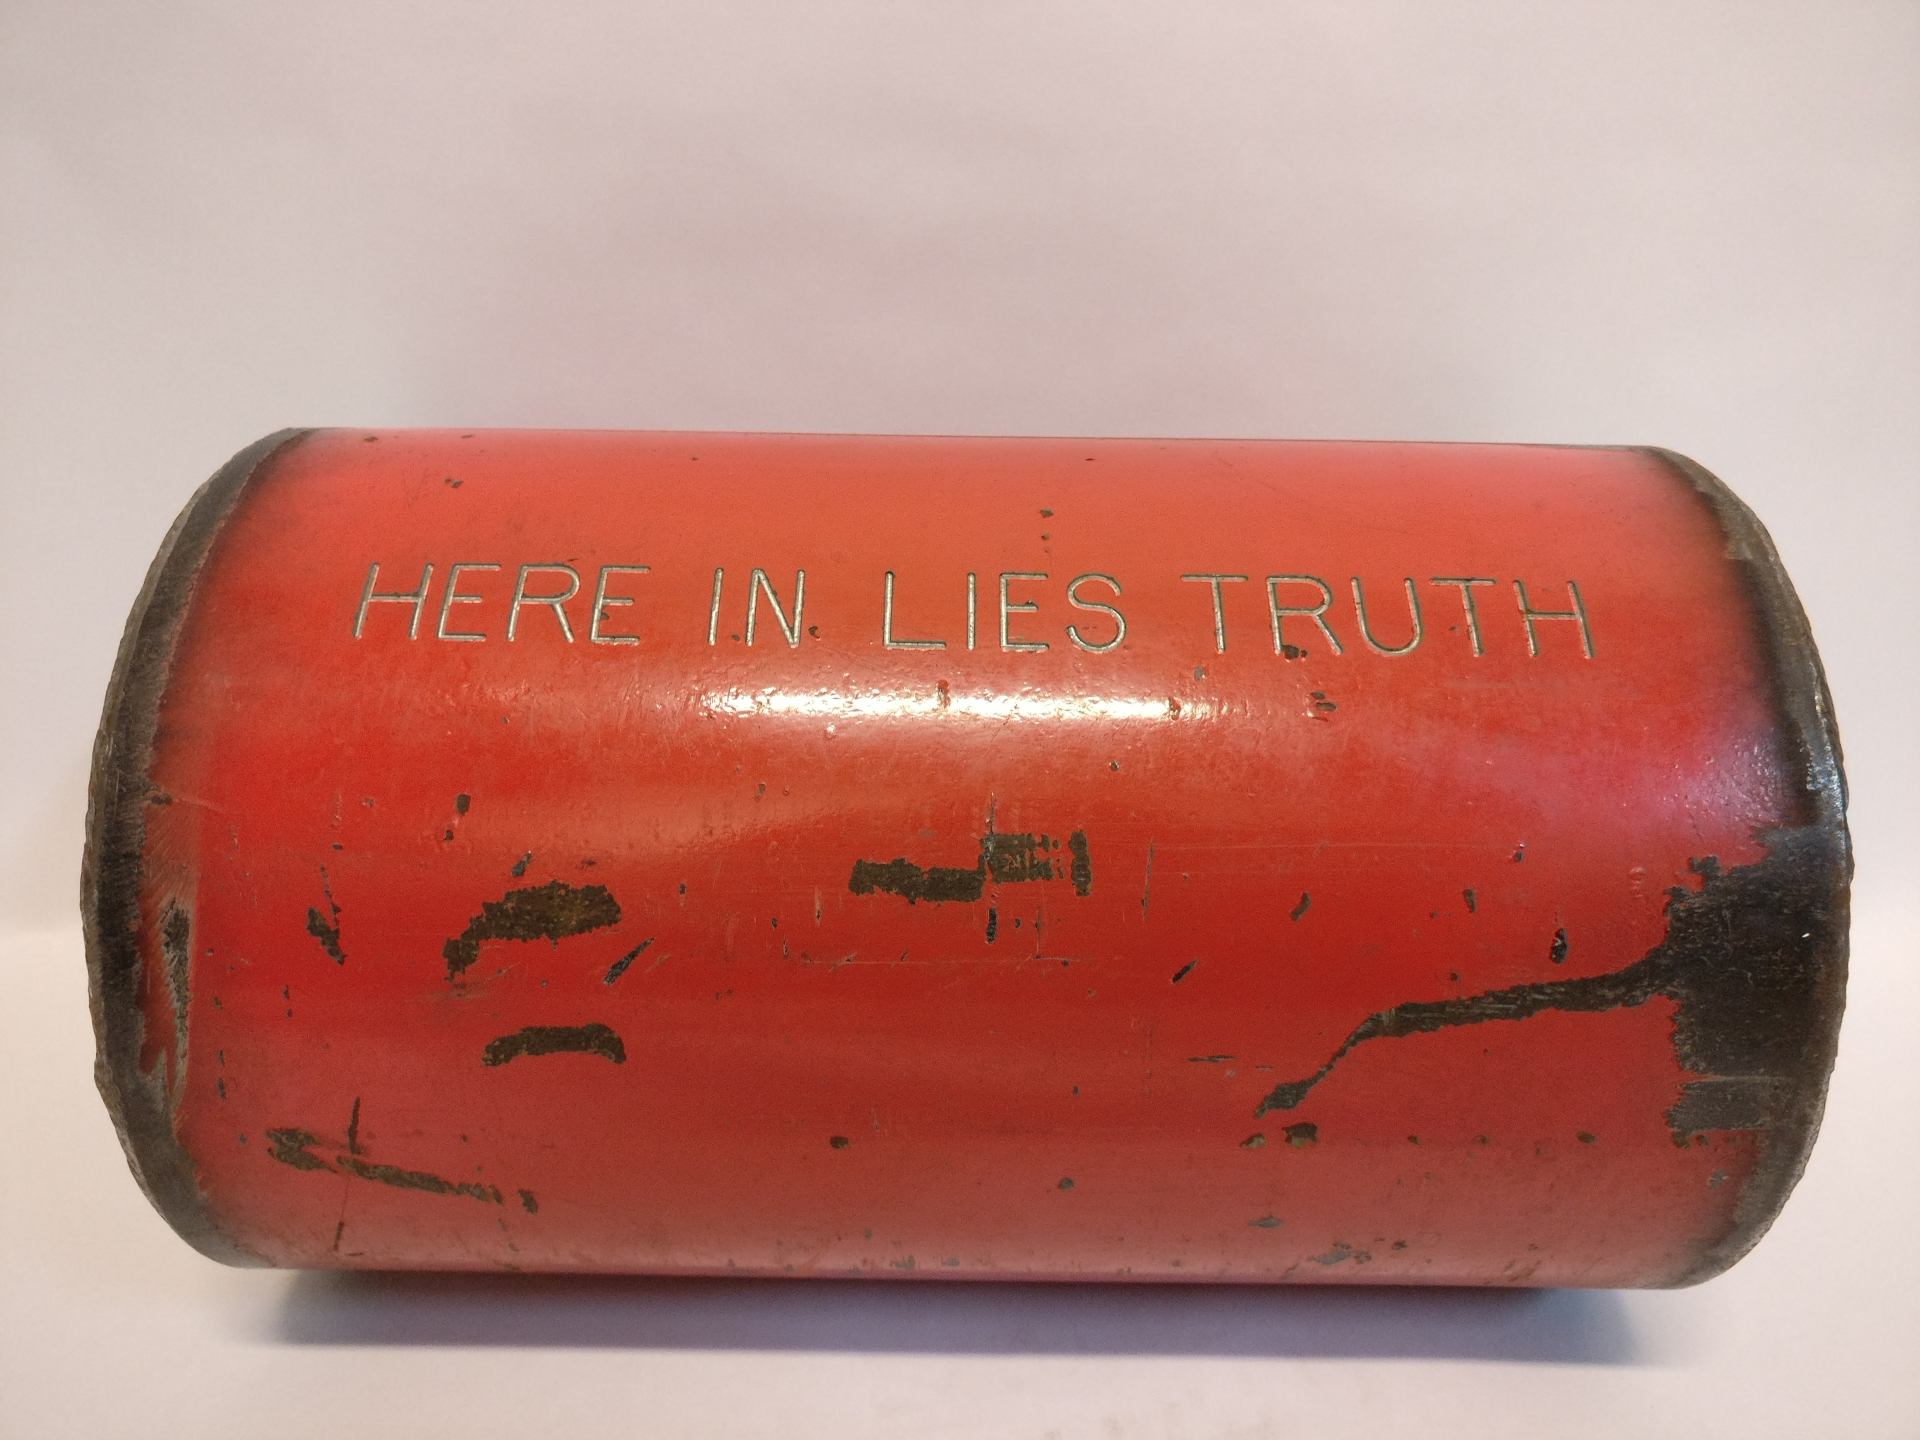 Here In Lies Truth, 1970 – present, painted steel